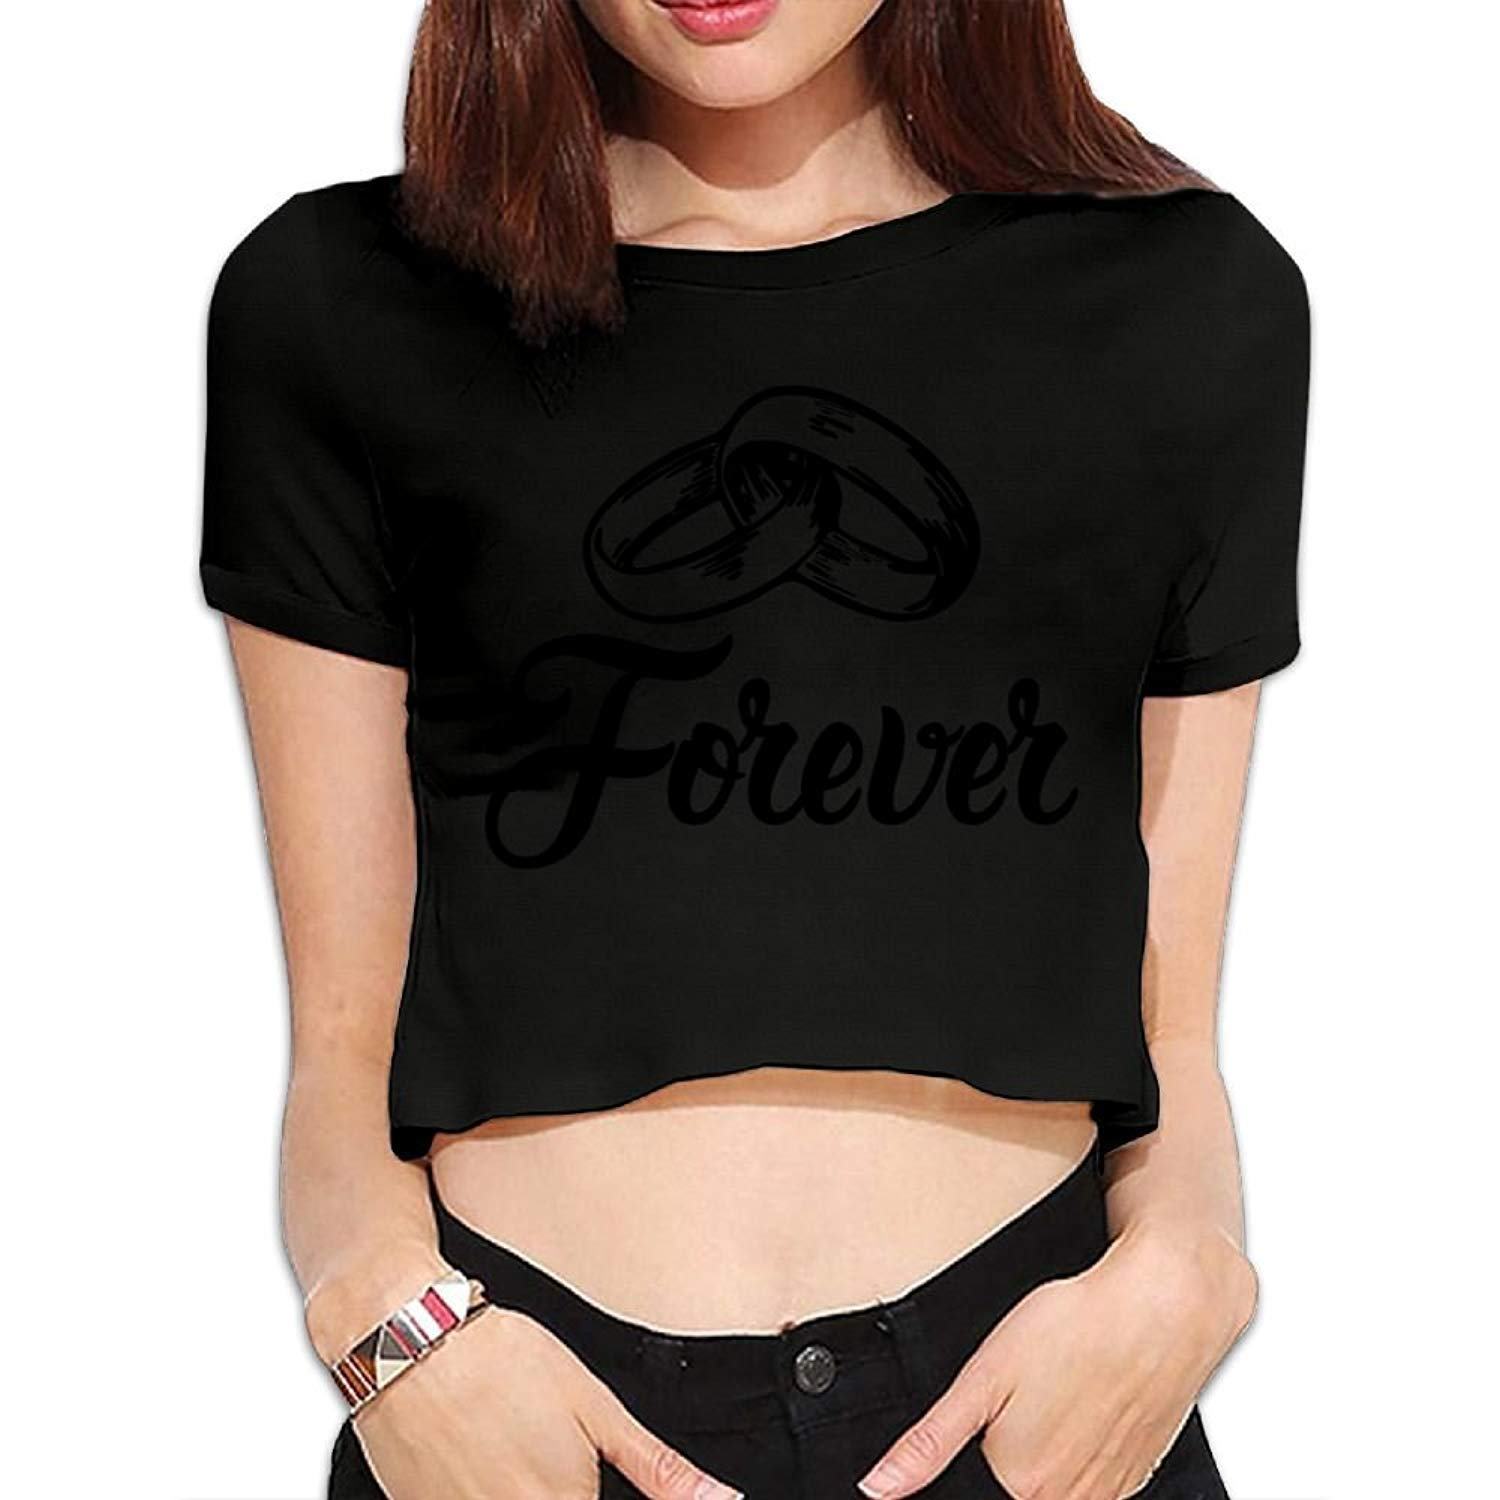 BHRETI Women Exposed Navel T-Shirts Sexy Forever Wedding Bands Fitted